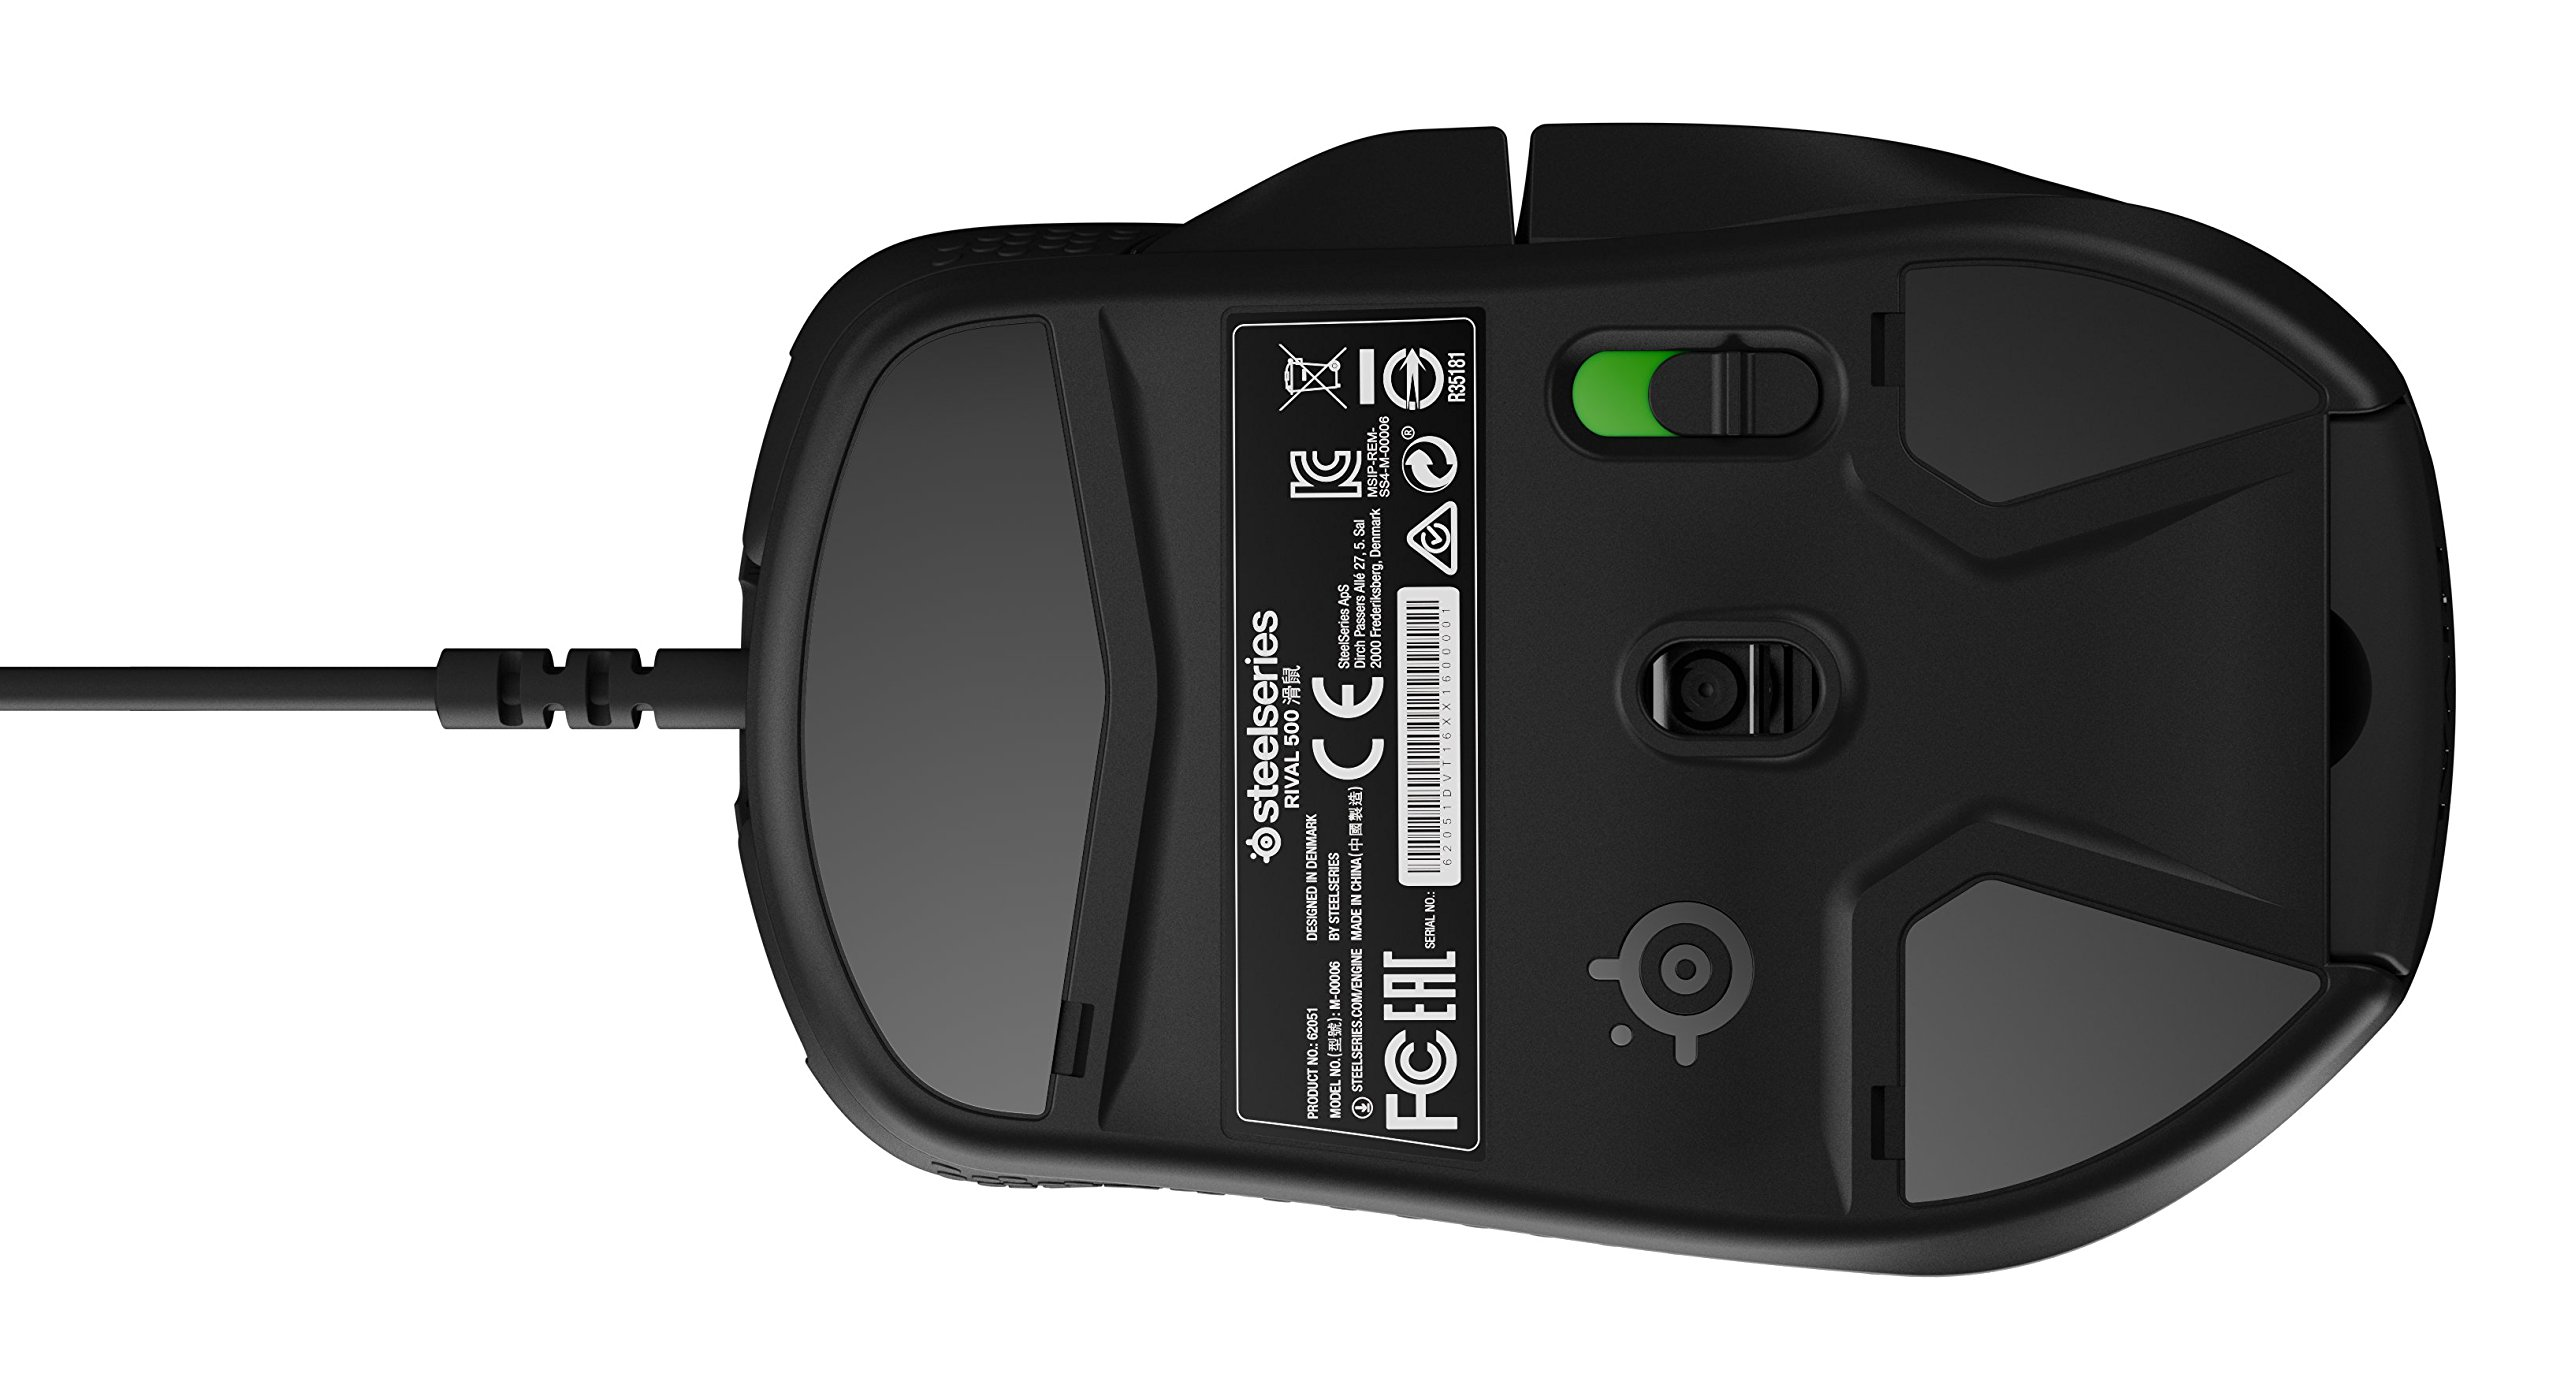 SteelSeries Rival 500 MMO/MOBA 15-Button Programmable Gaming Mouse - 16,000 CPI by SteelSeries (Image #5)